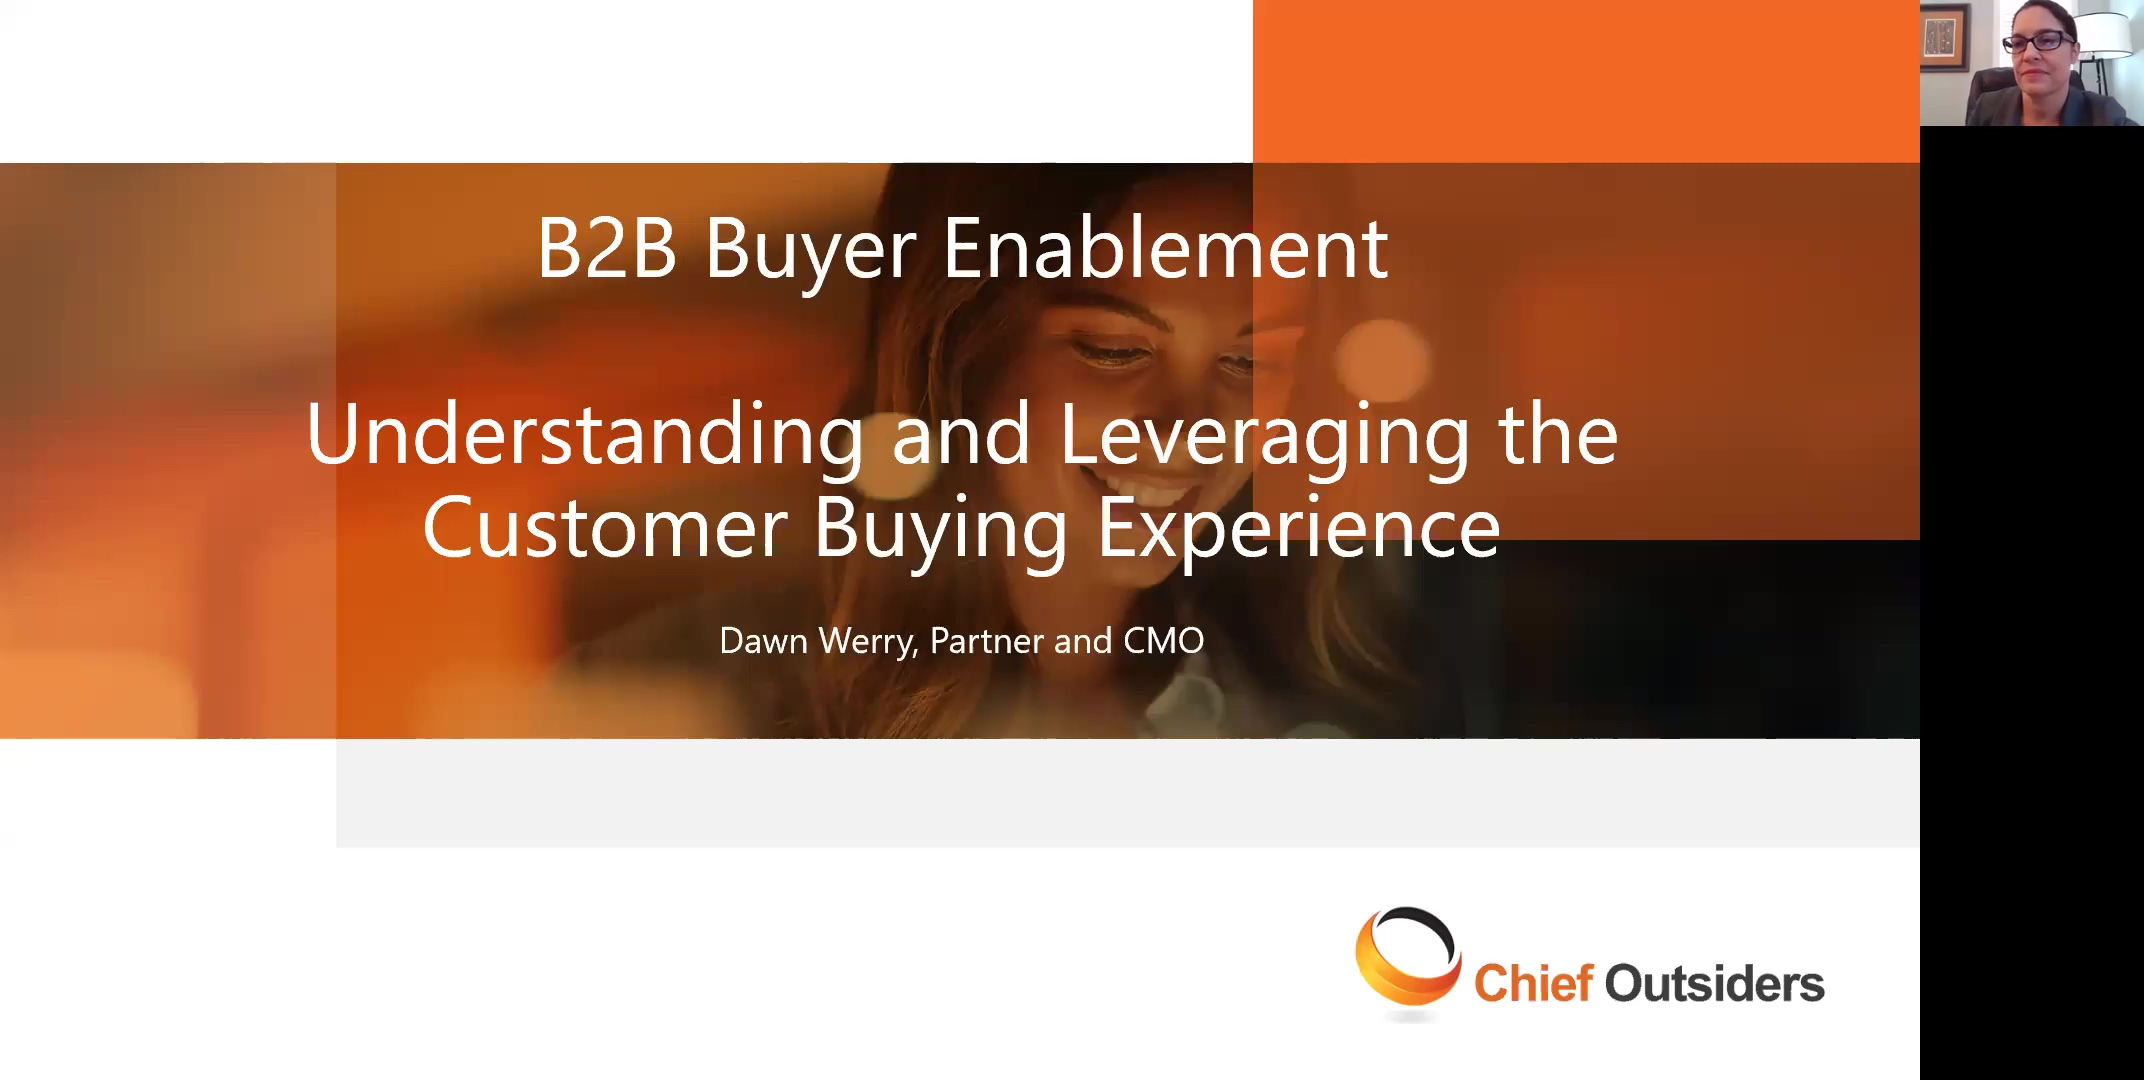 understanding-and-leveraging-the-customer-buying-experience